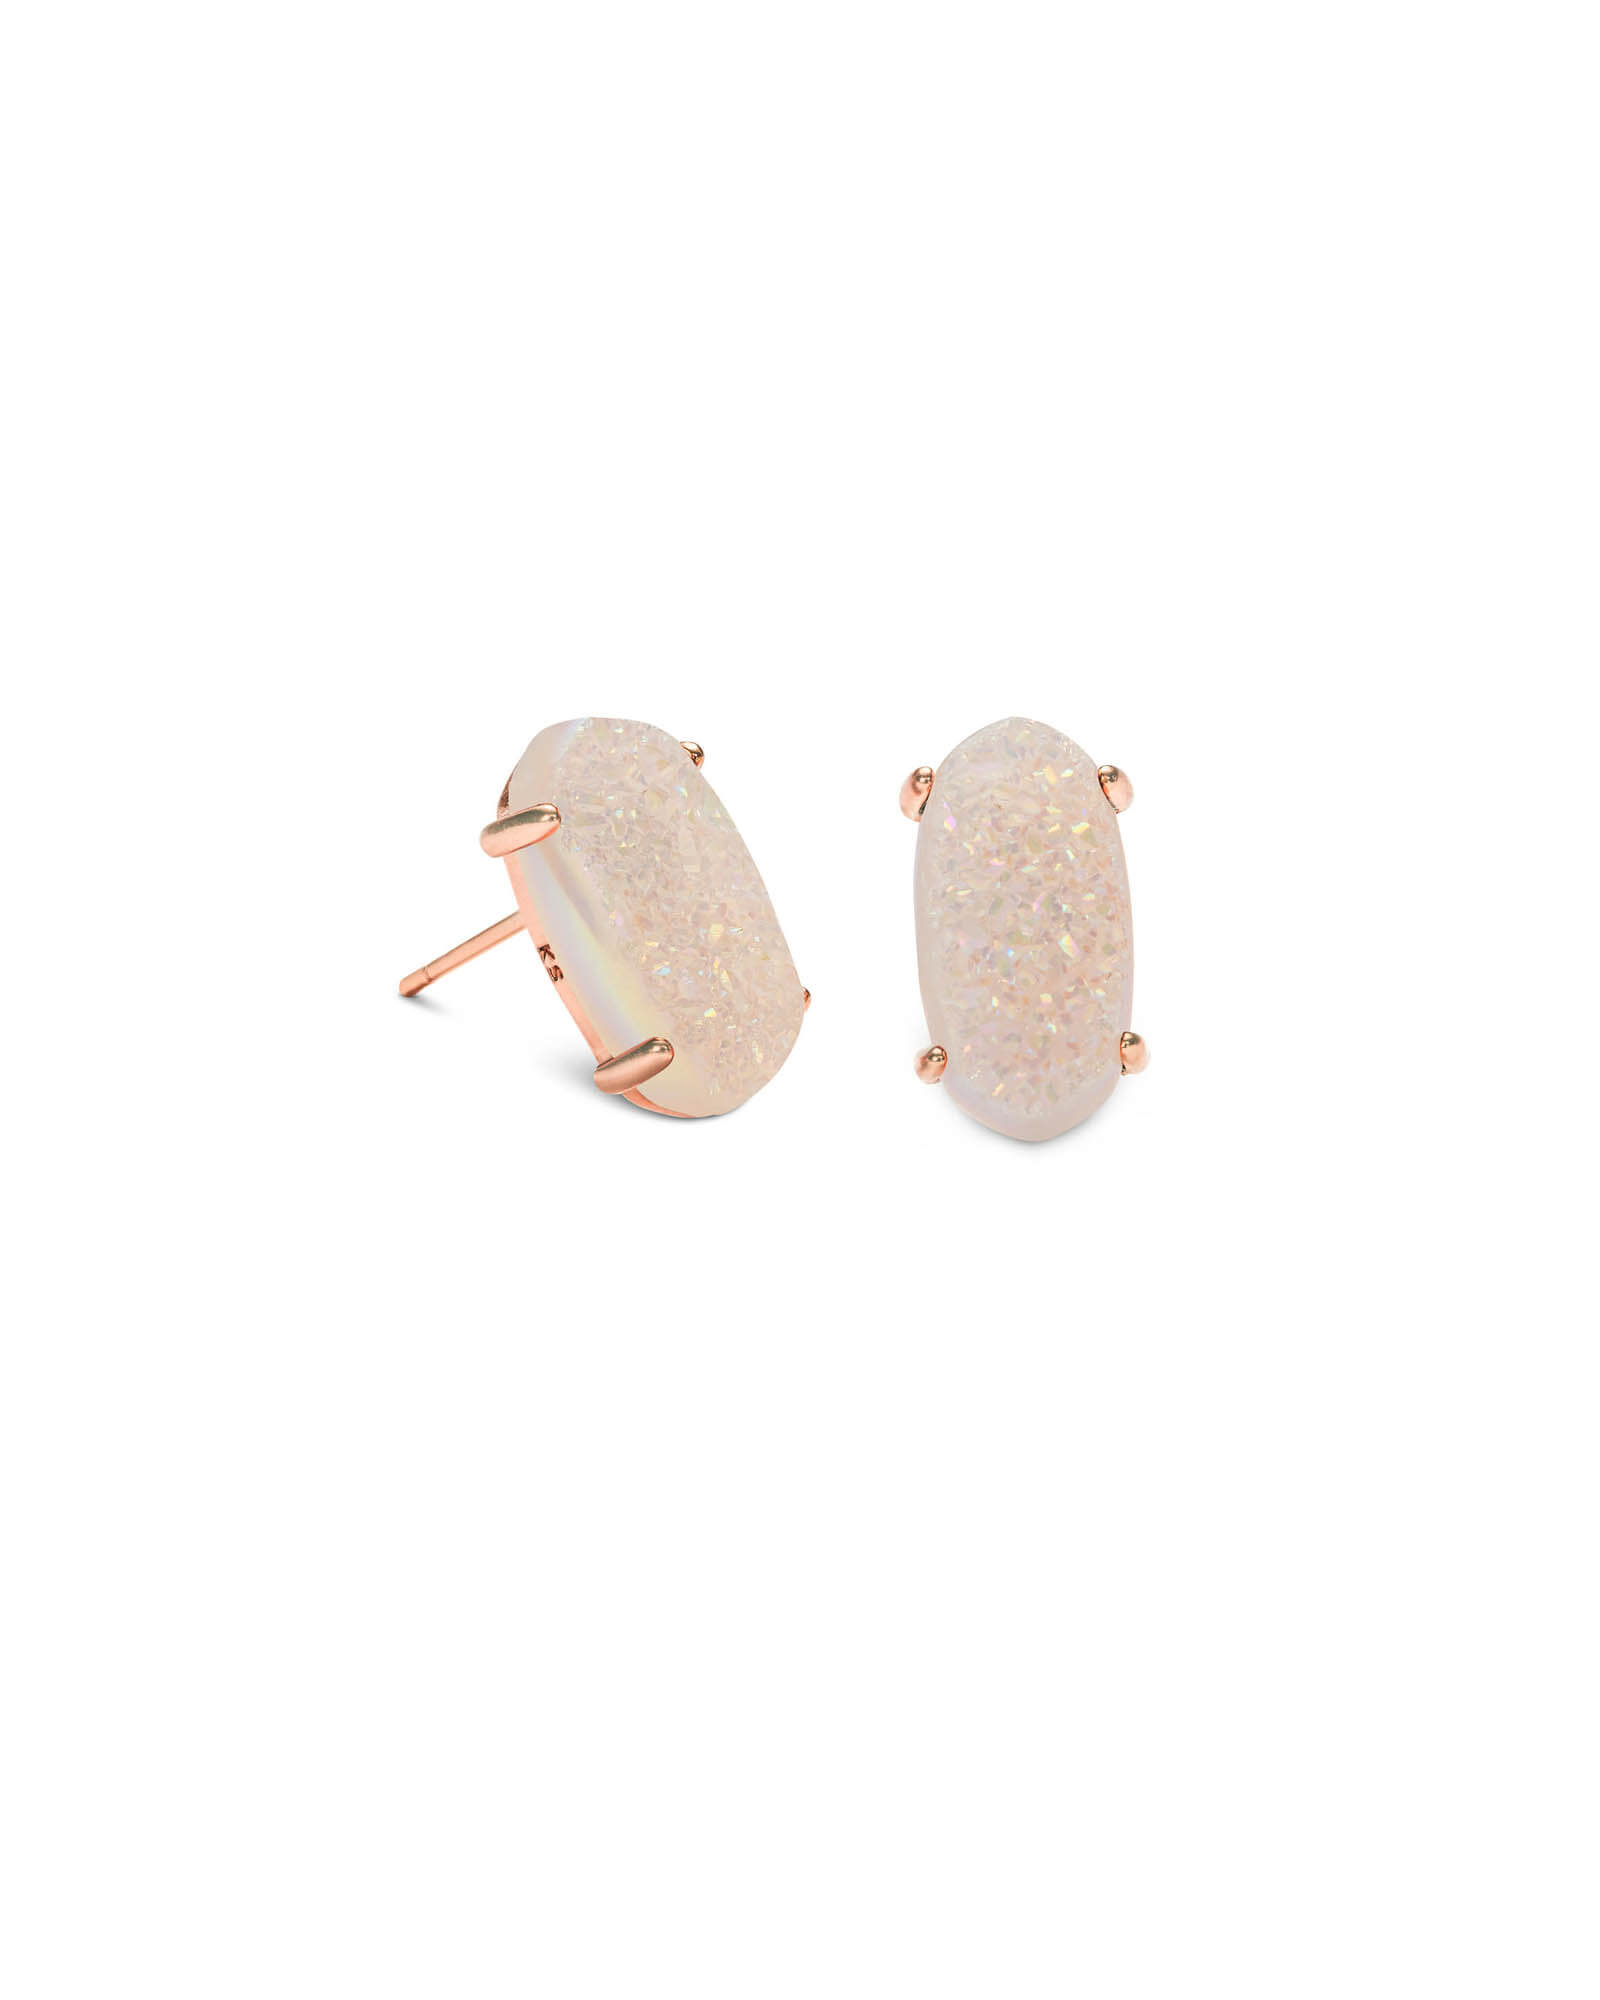 Betty Rose Gold Stud Earrings in Iridescent Drusy